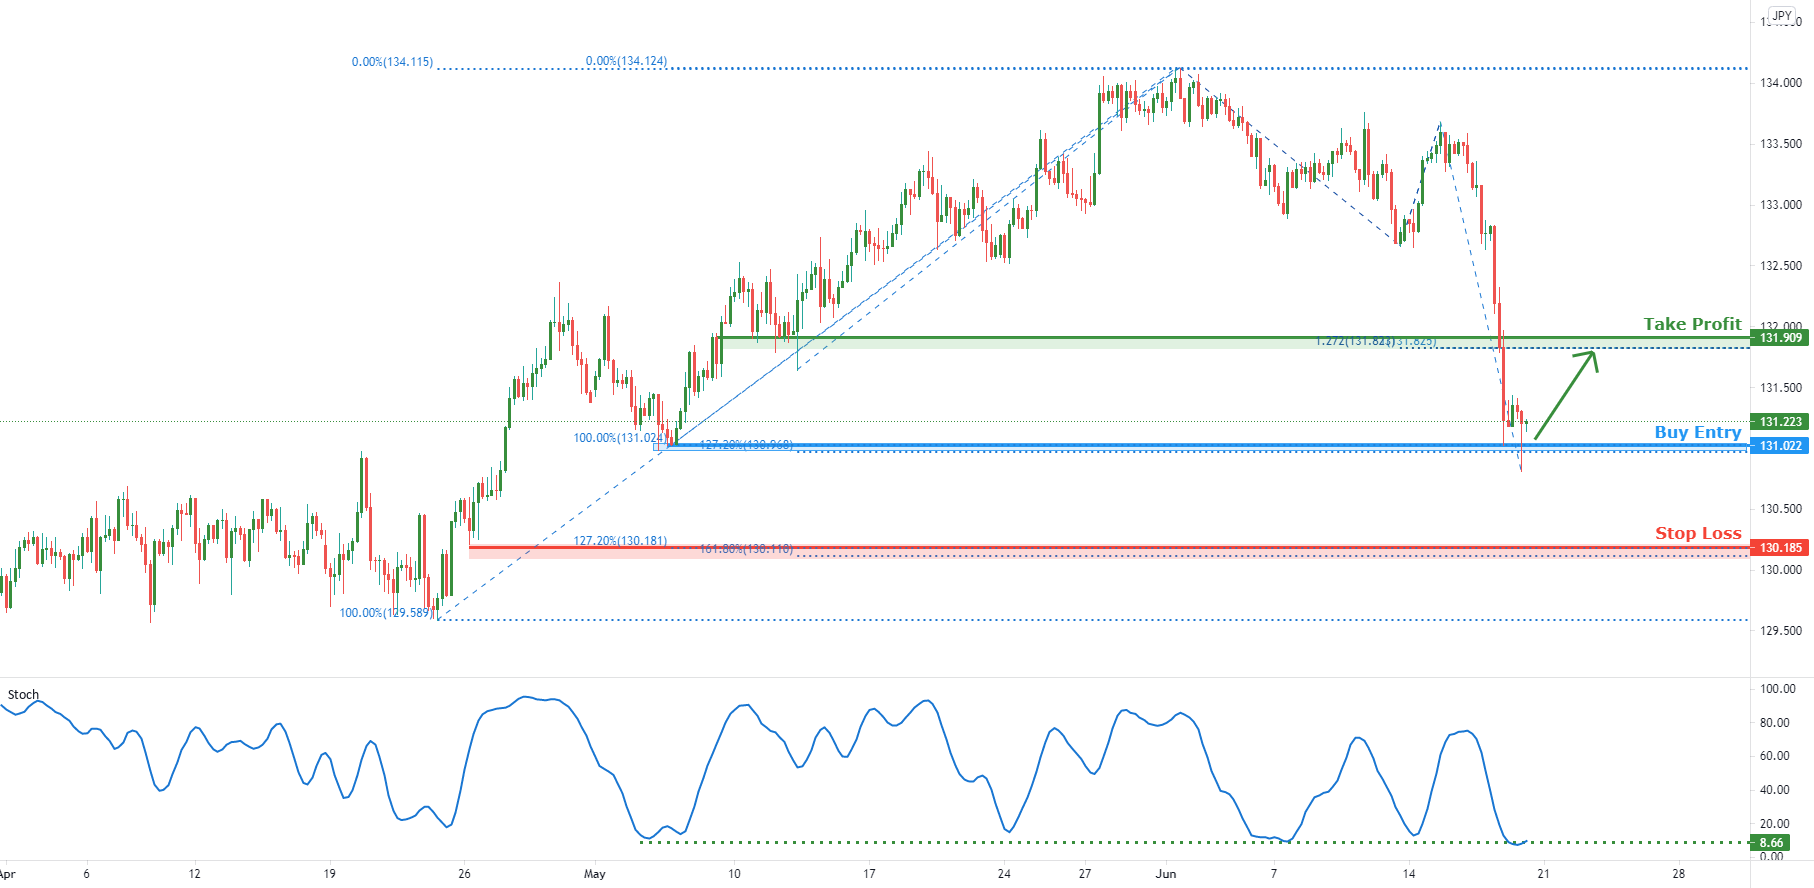 EURJPY appears overbought for FX:EURJPY by FXCM